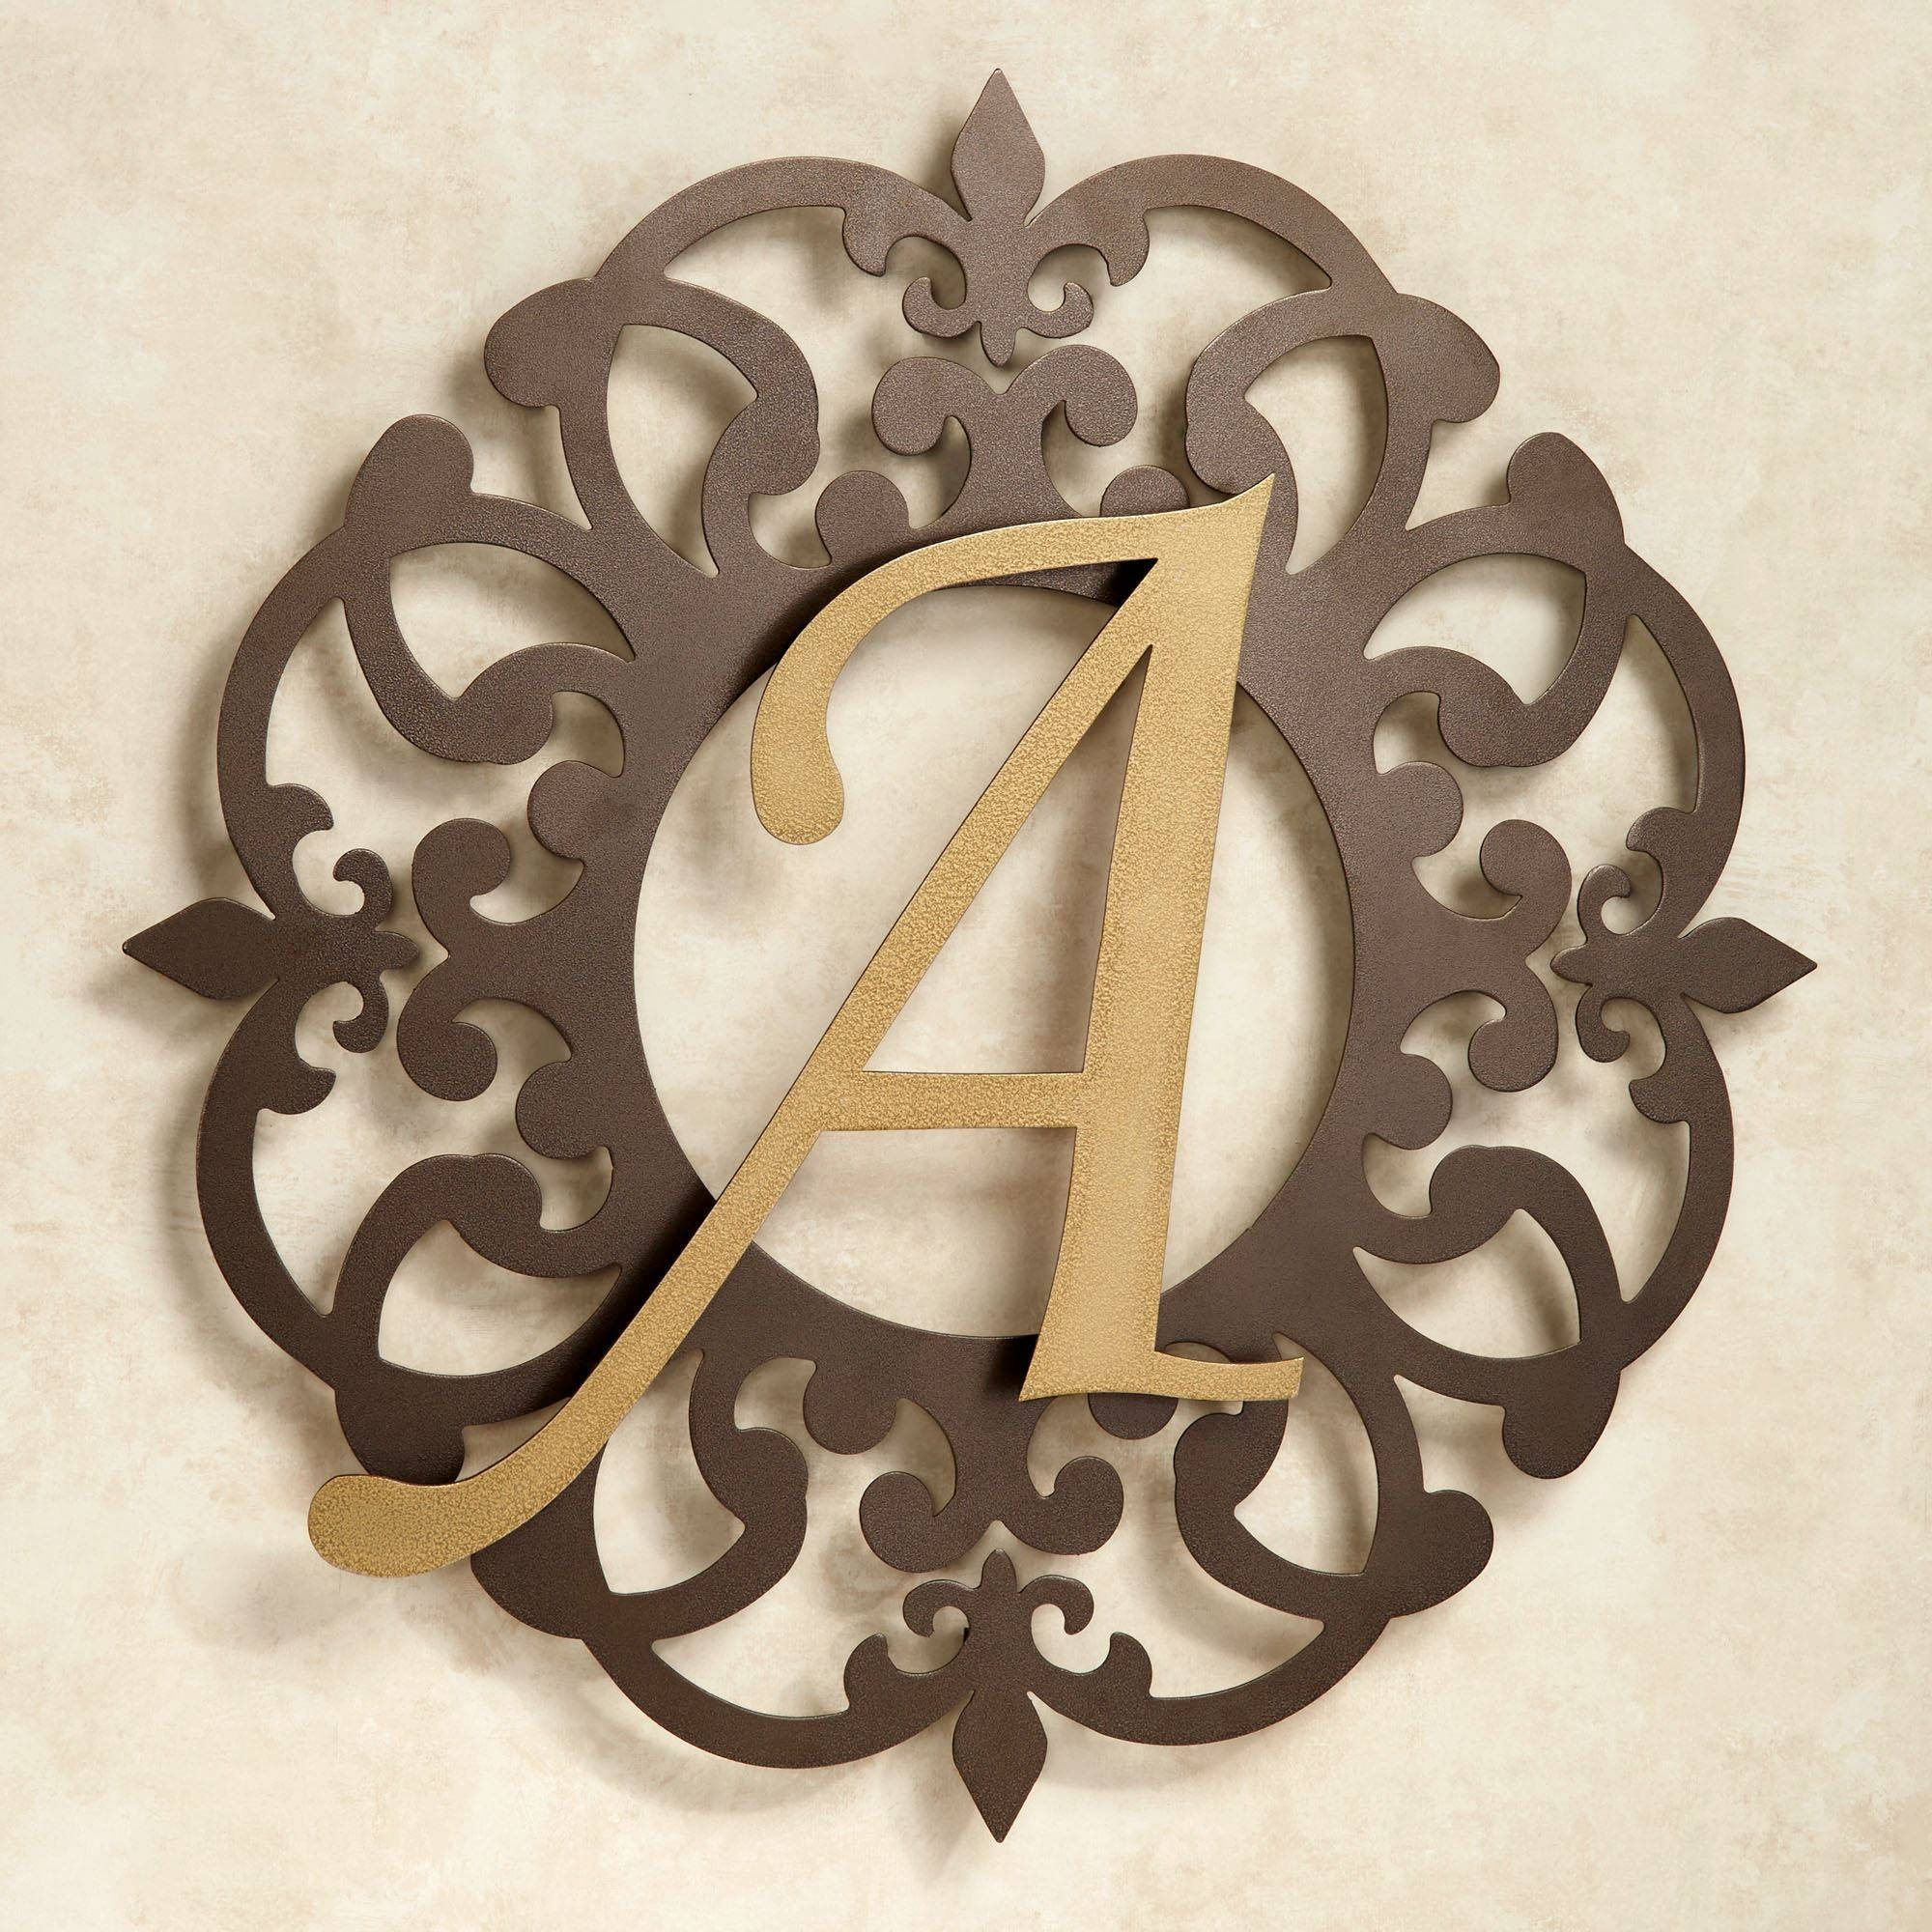 Heritage Monogram Metal Wall Art Signjasonw Studios In 2017 Monogram Metal Wall Art (Gallery 2 of 20)